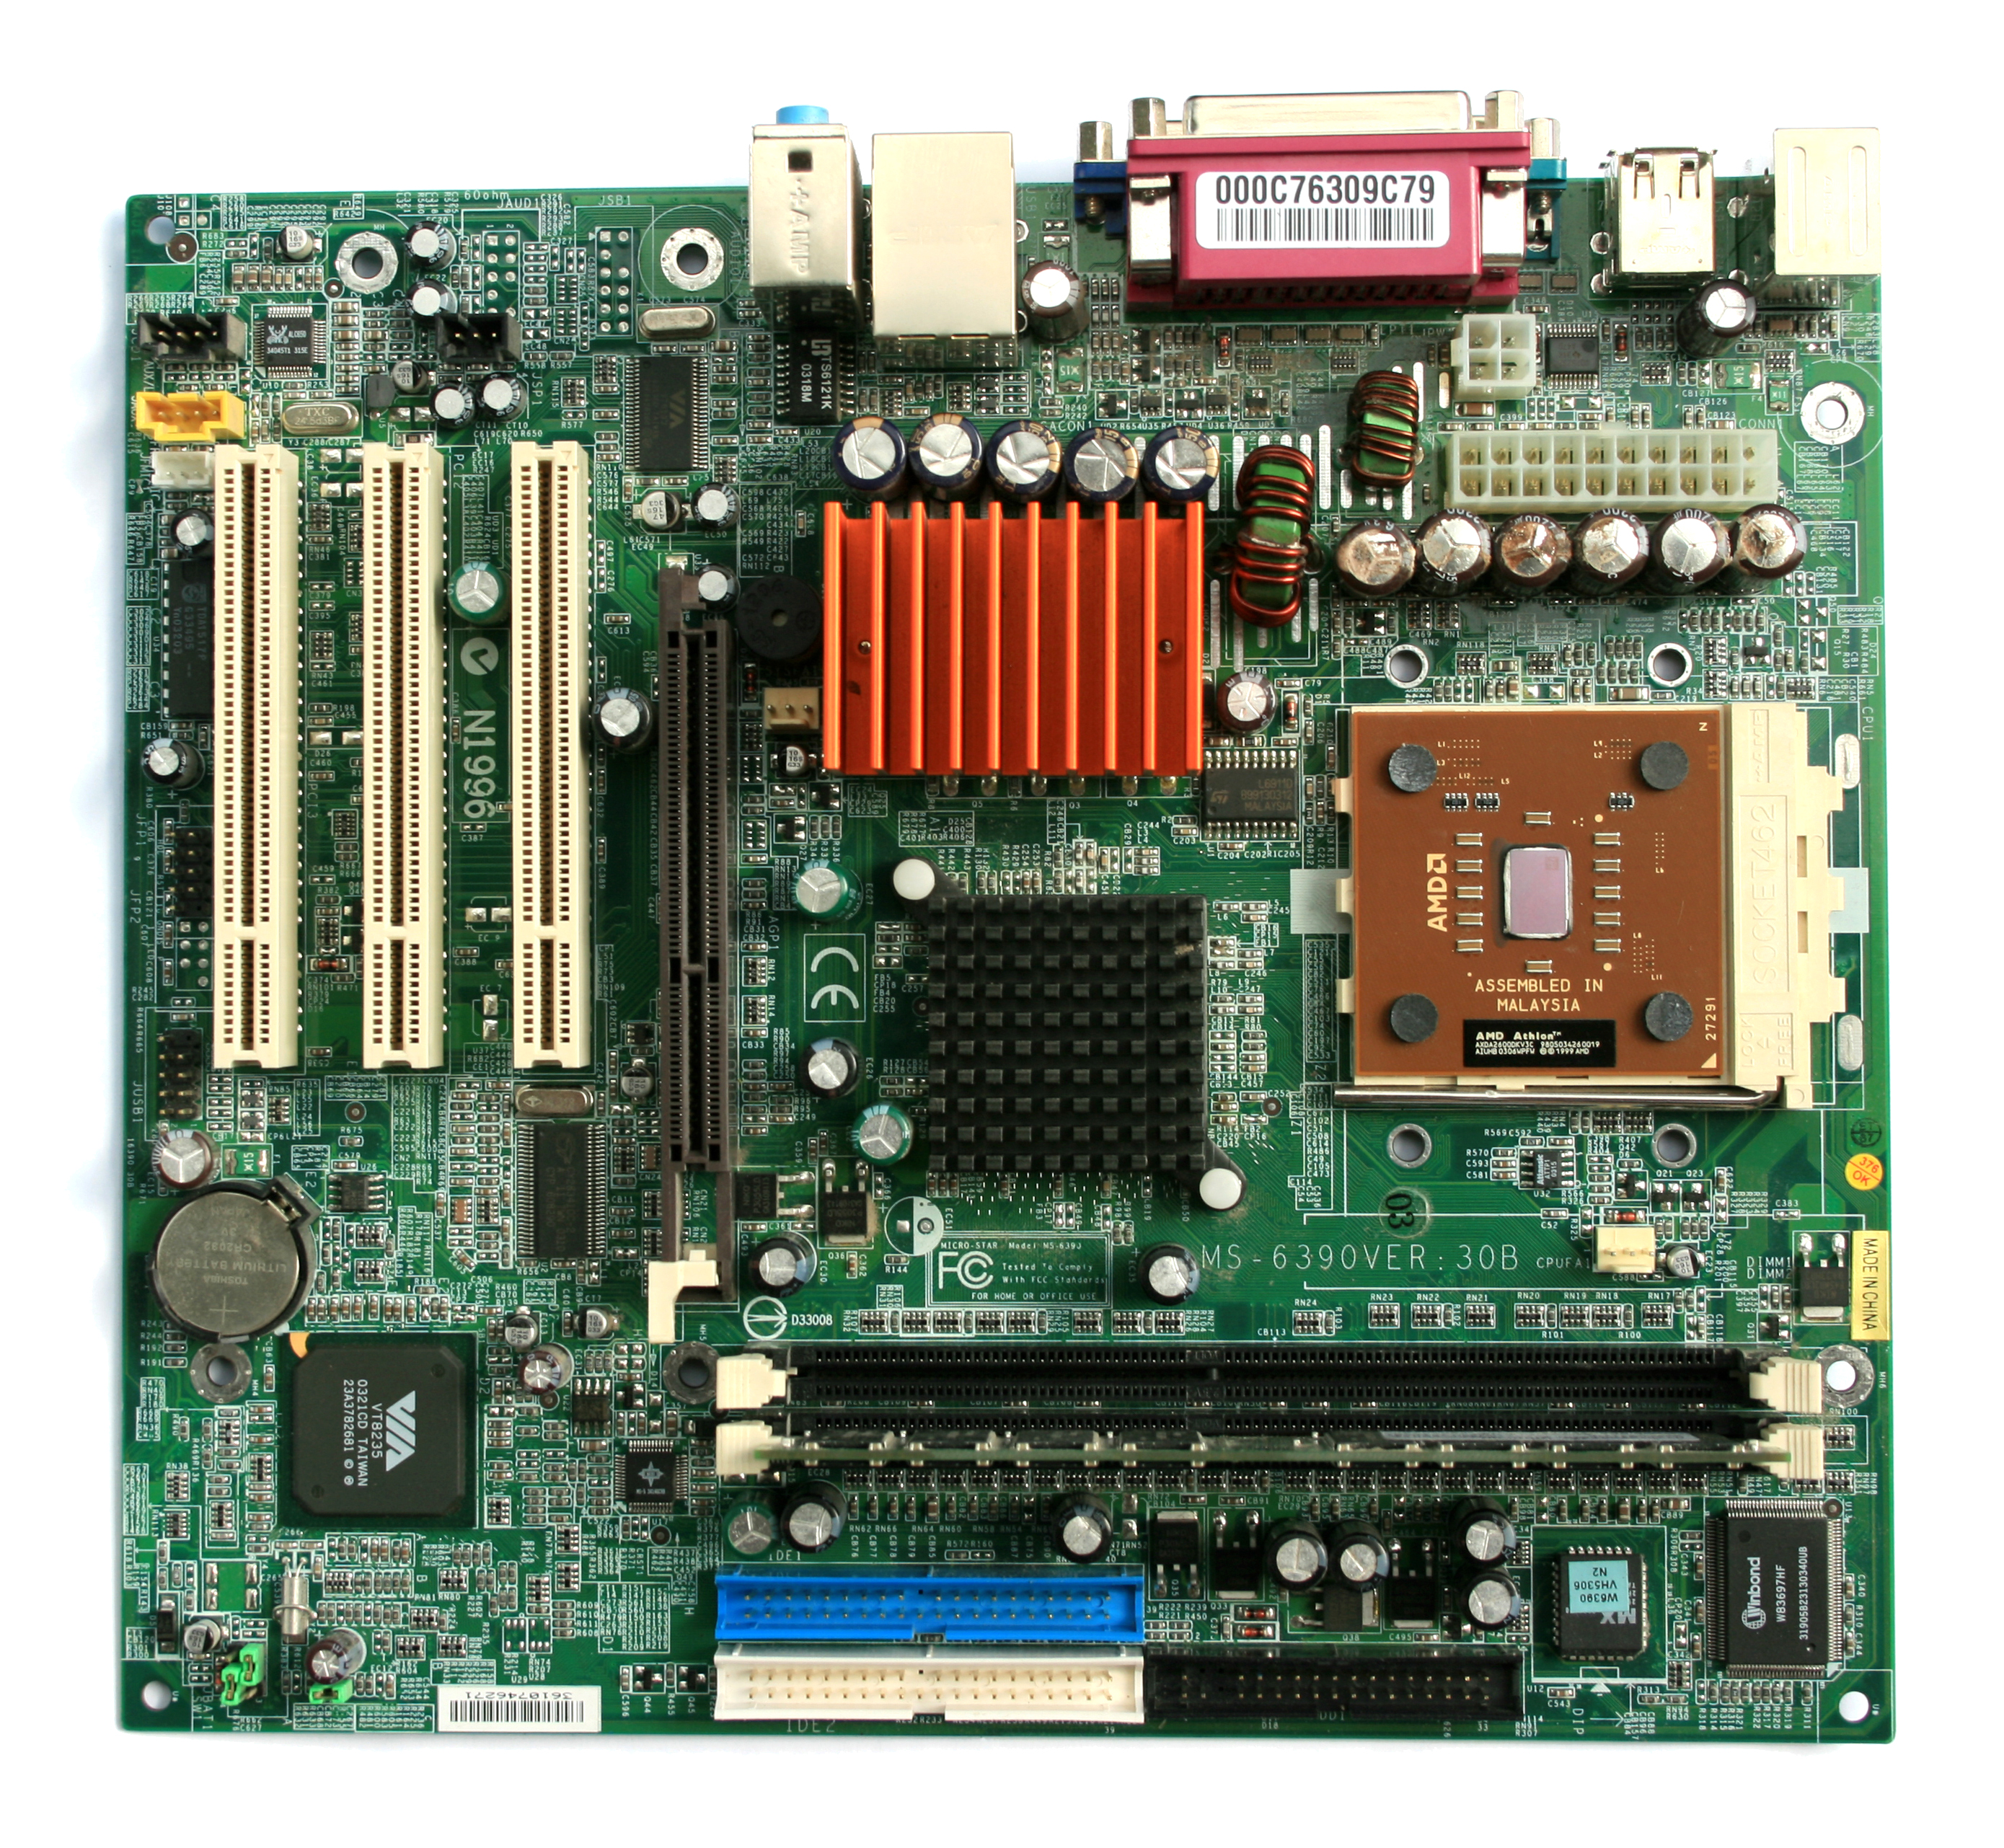 A microATX motherboard with some faulty capacitors.